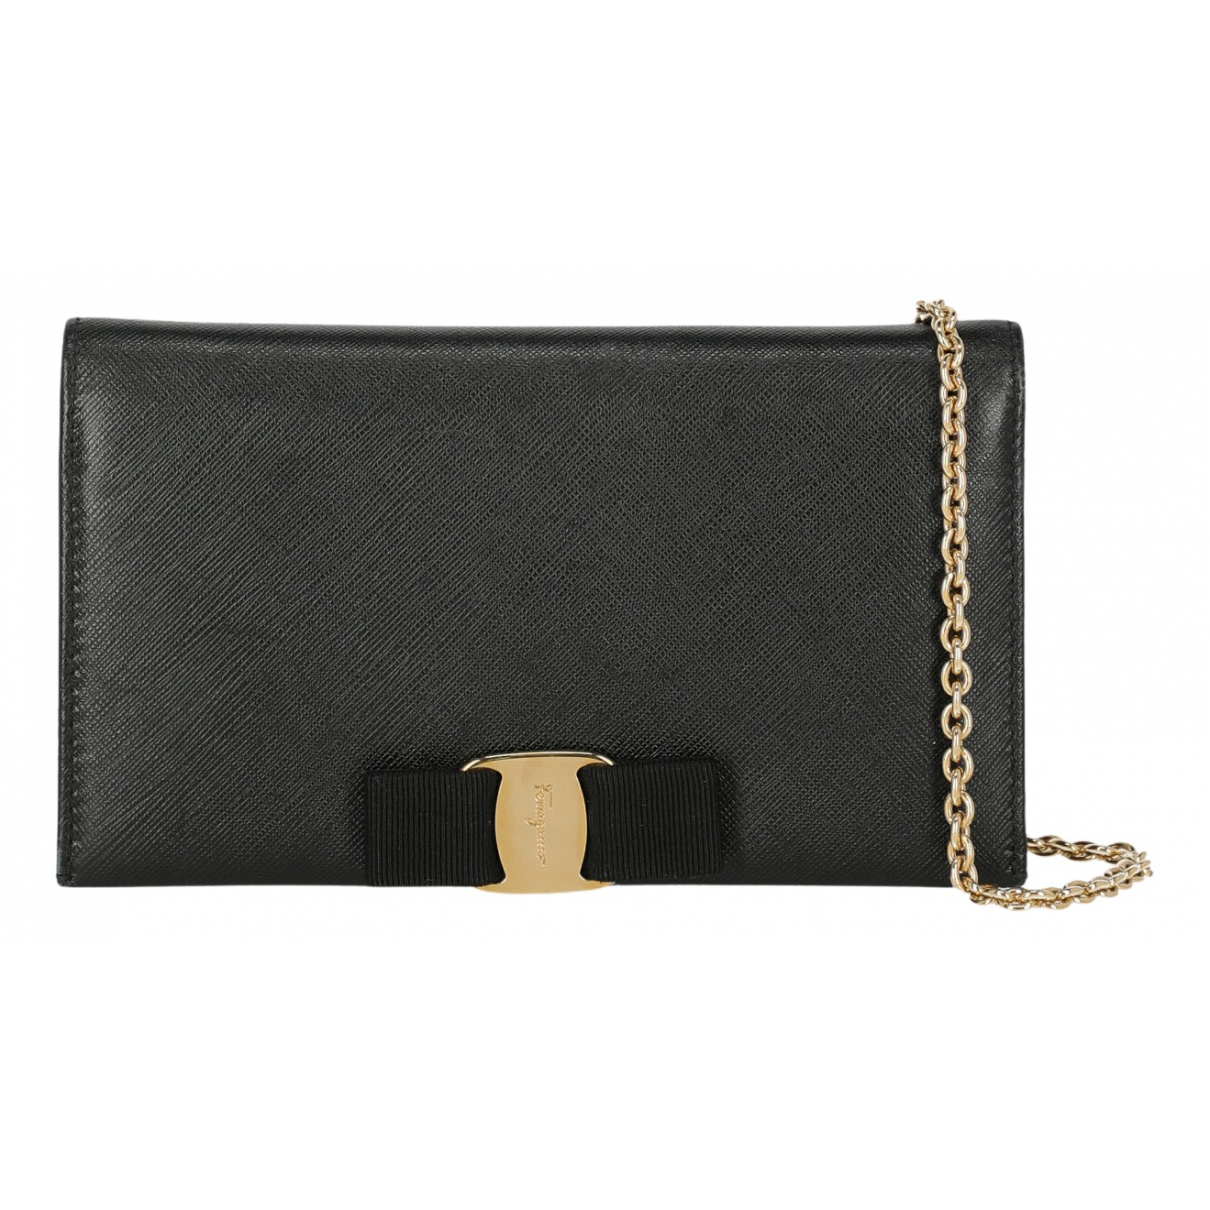 Salvatore Ferragamo N Black Leather wallet for Women N